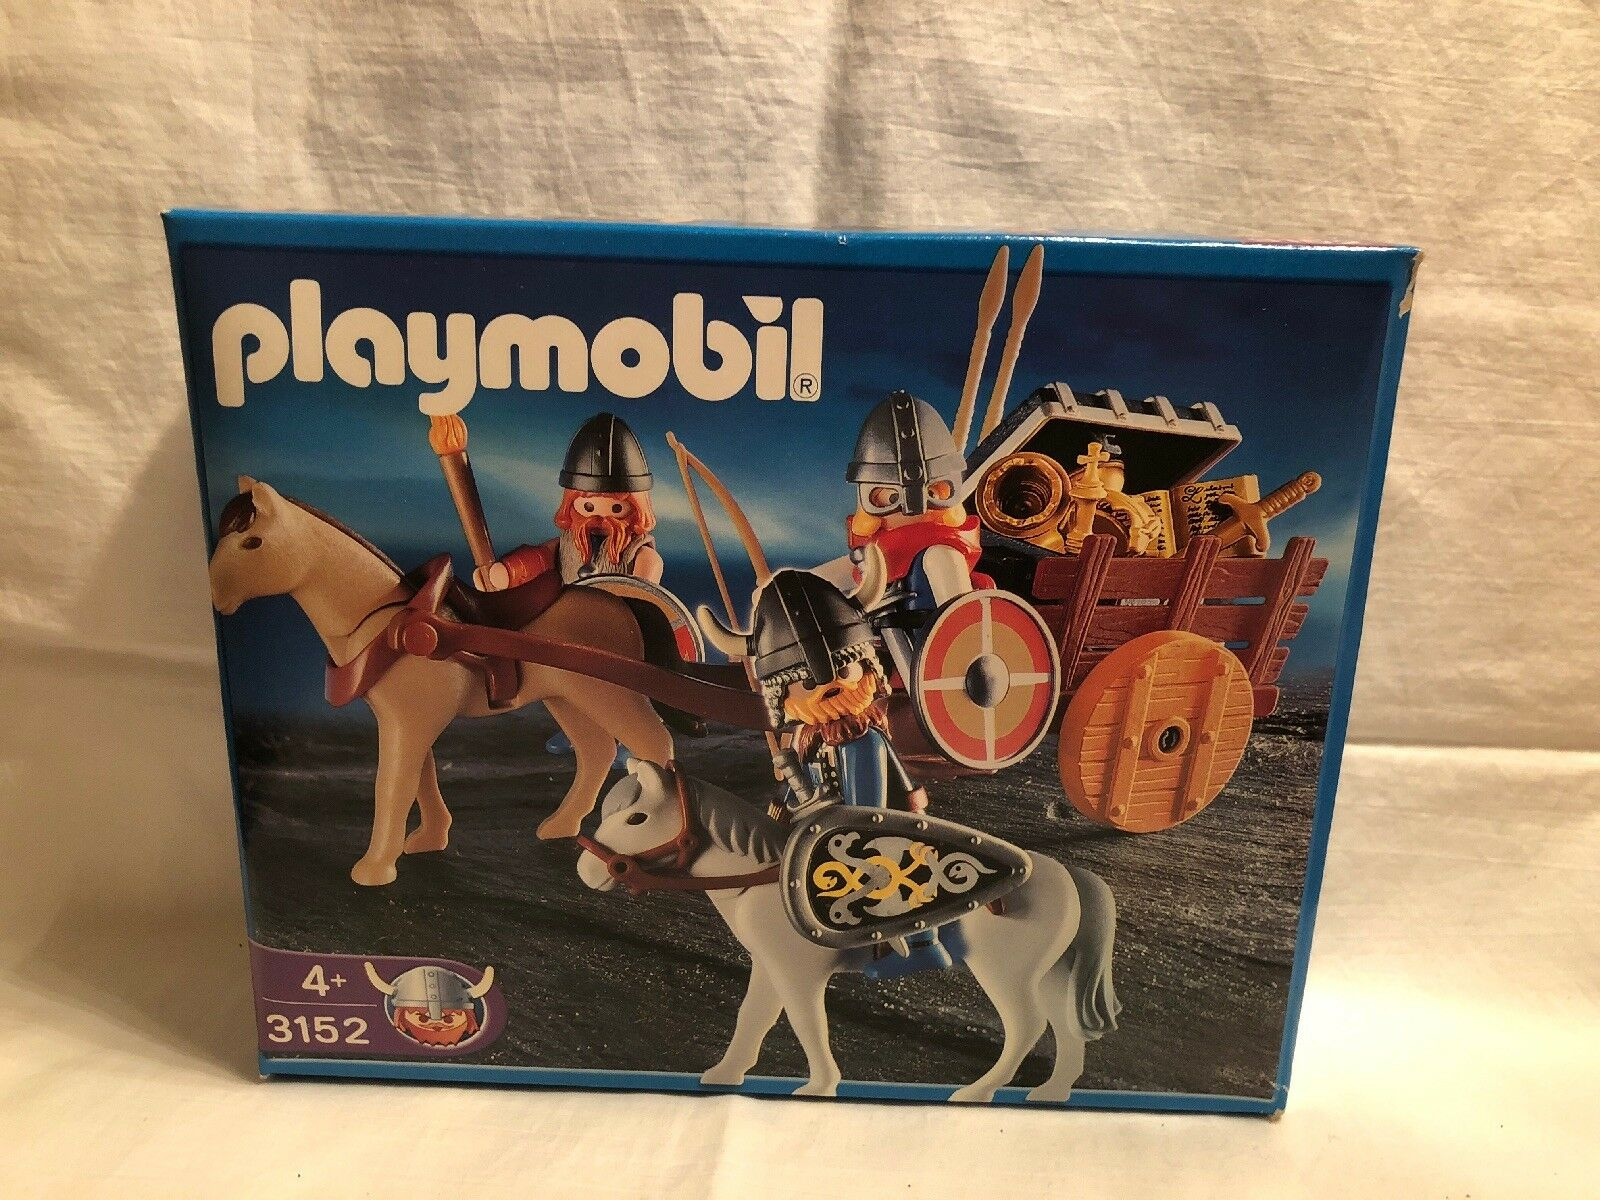 3152 Playmobil Vikings Set (NIB)